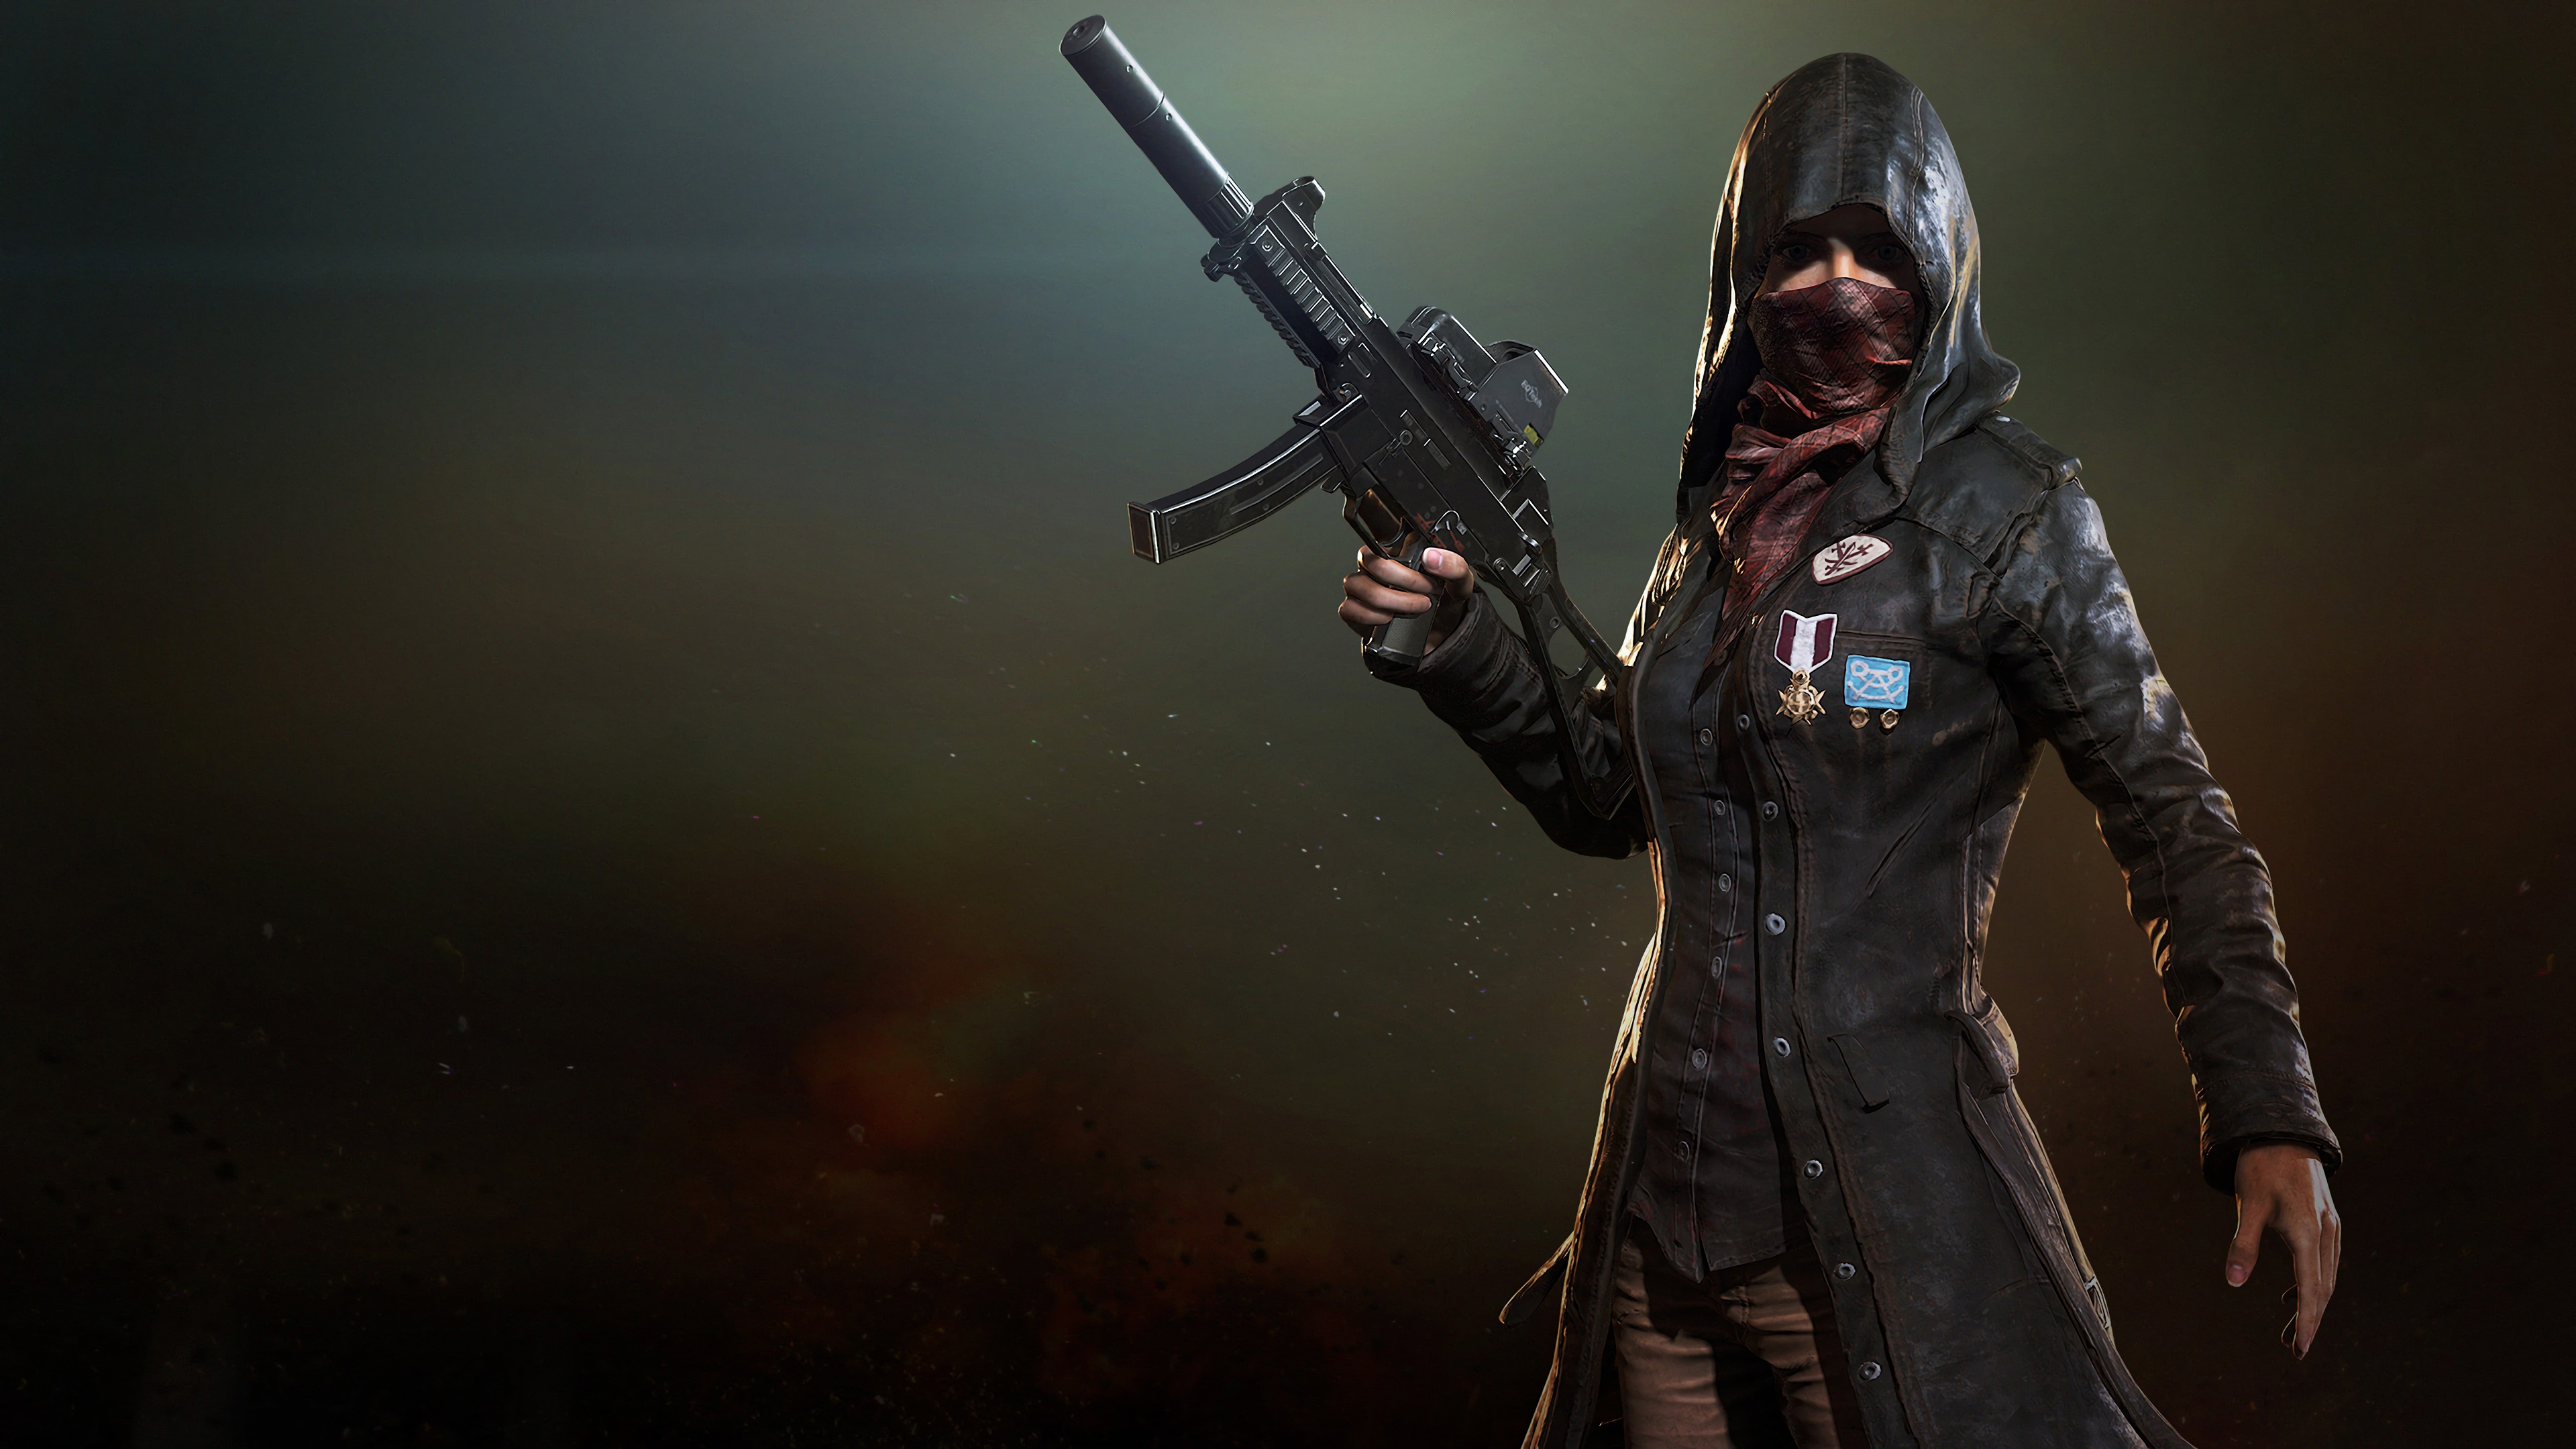 Pubg Wallpapers Hd 4k: Pubg Trenchcoat Girl 4k, HD Games, 4k Wallpapers, Images